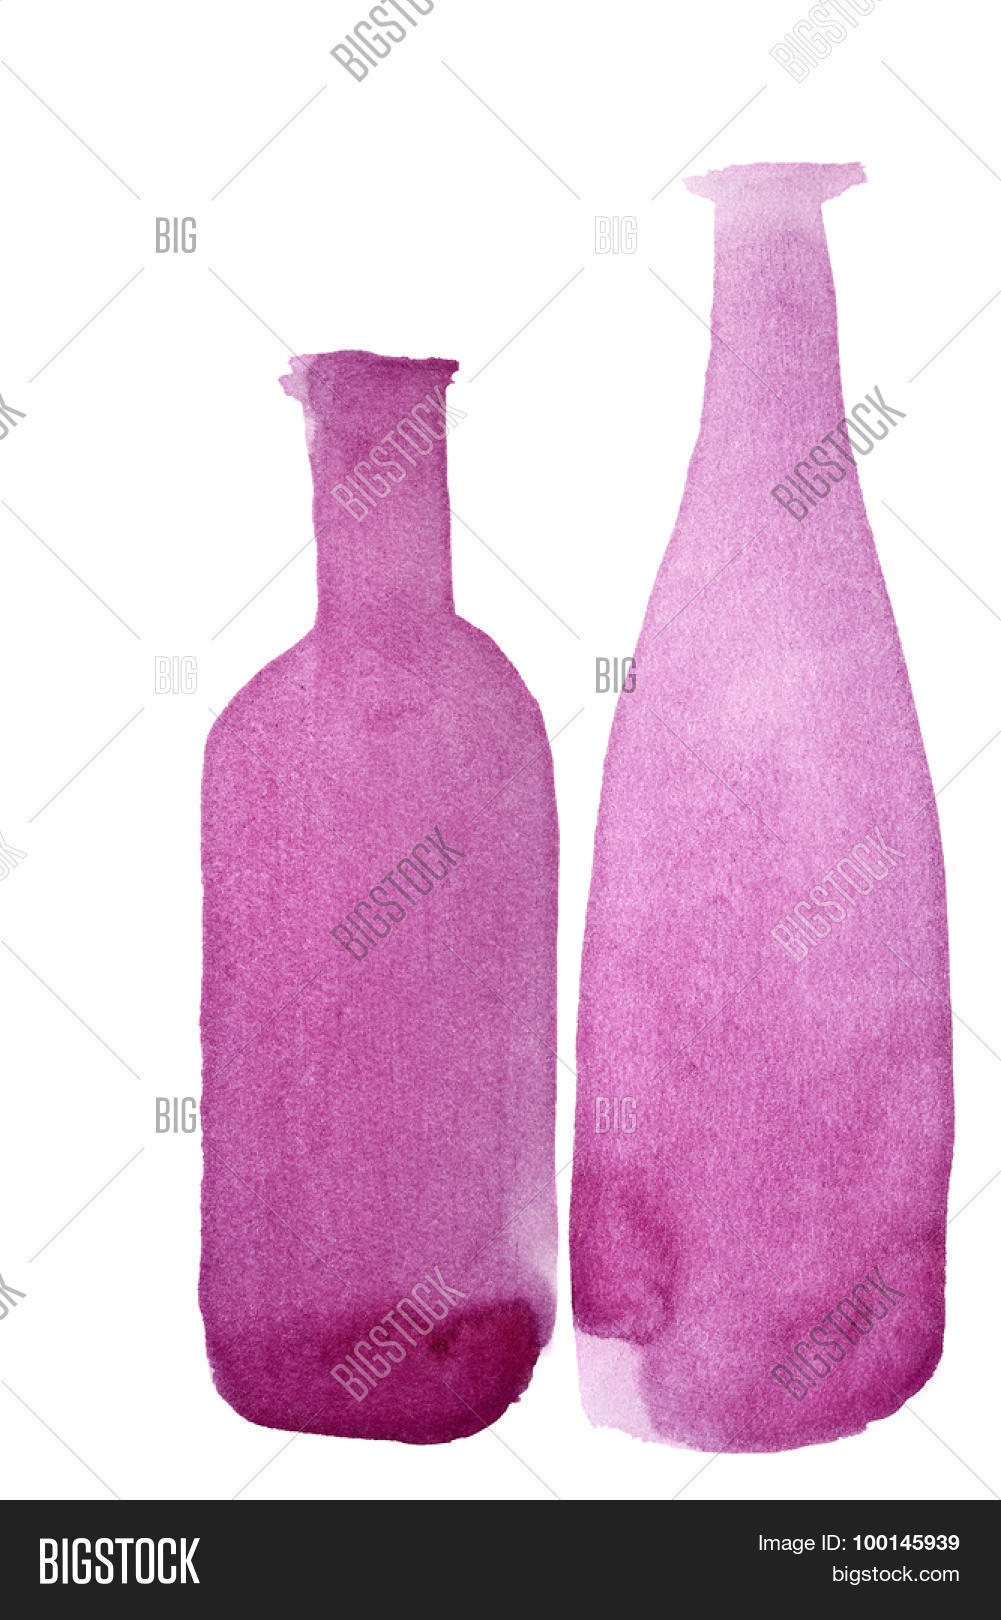 alcohol,art,background,bar,beverage,blot,bottle,close-up,closeup,drink,drip,element,food,illustration,isolated,life,liquid,object,painting,pink,raster,real,red,restaurant,rose,shape,silhouette,spill,stain,still,still-life,symbol,two,warer-color,watercolor,white,wine,wine-making,winery